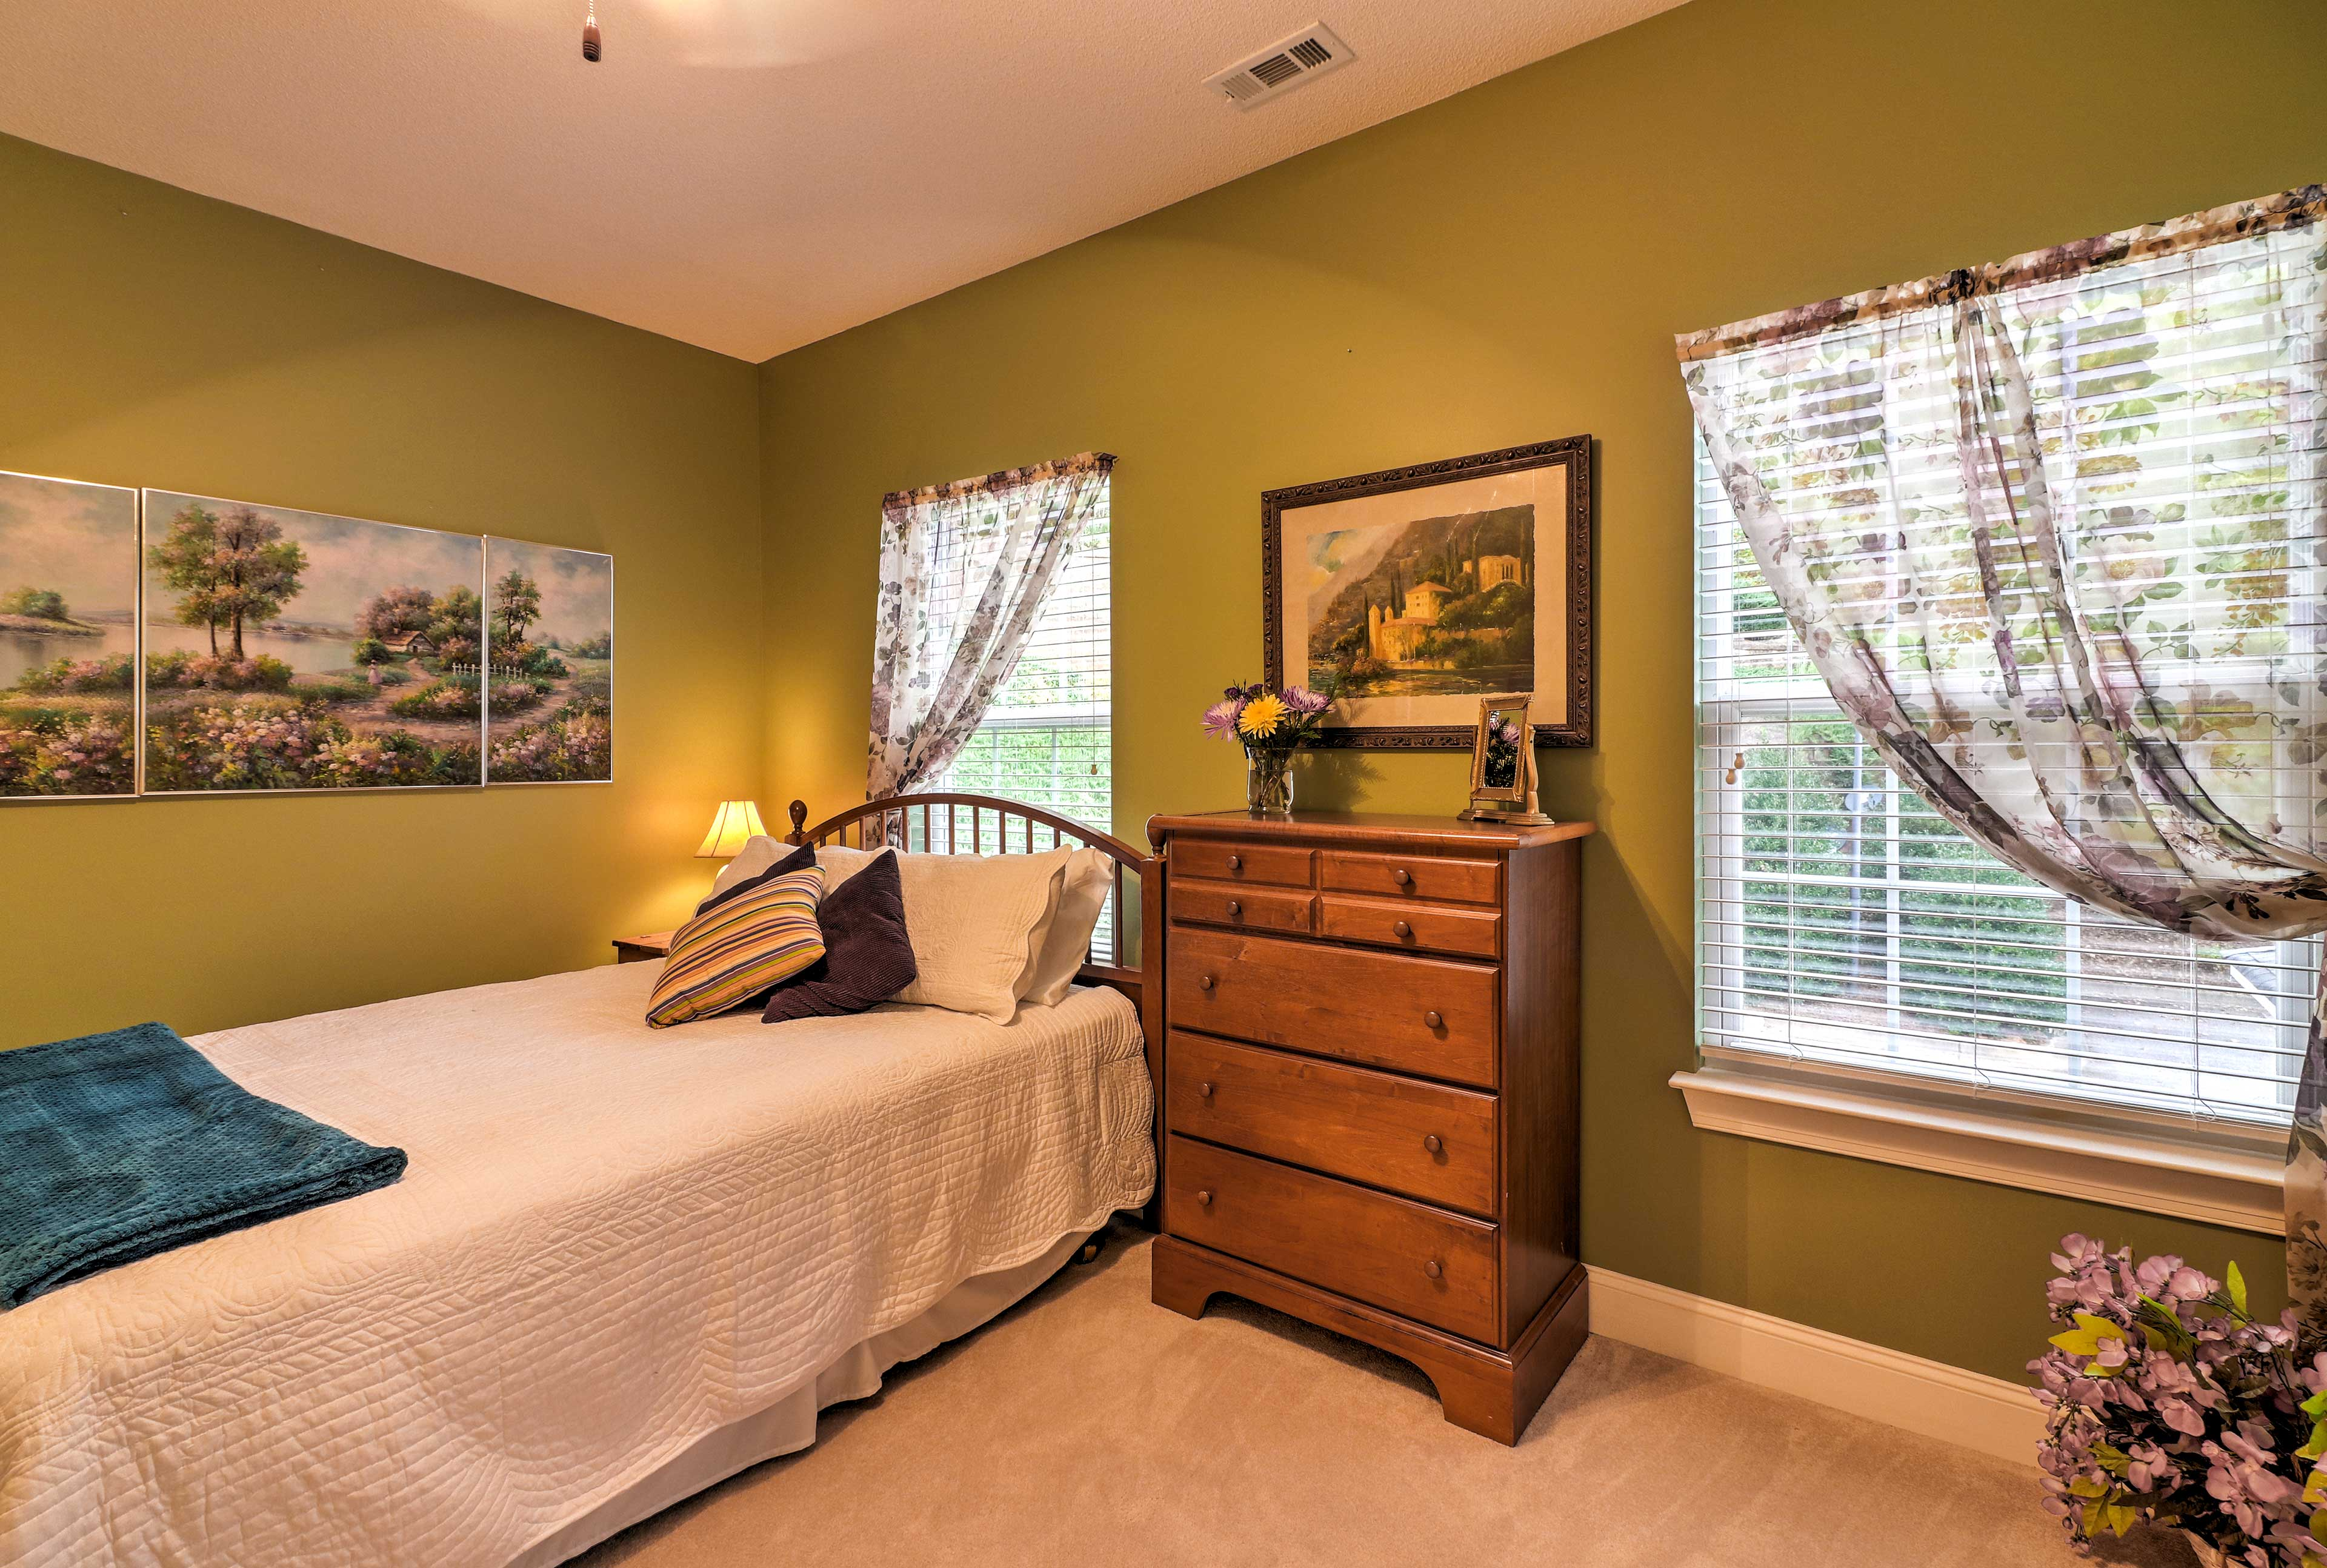 The second bedroom features a soft queen-sized bed.